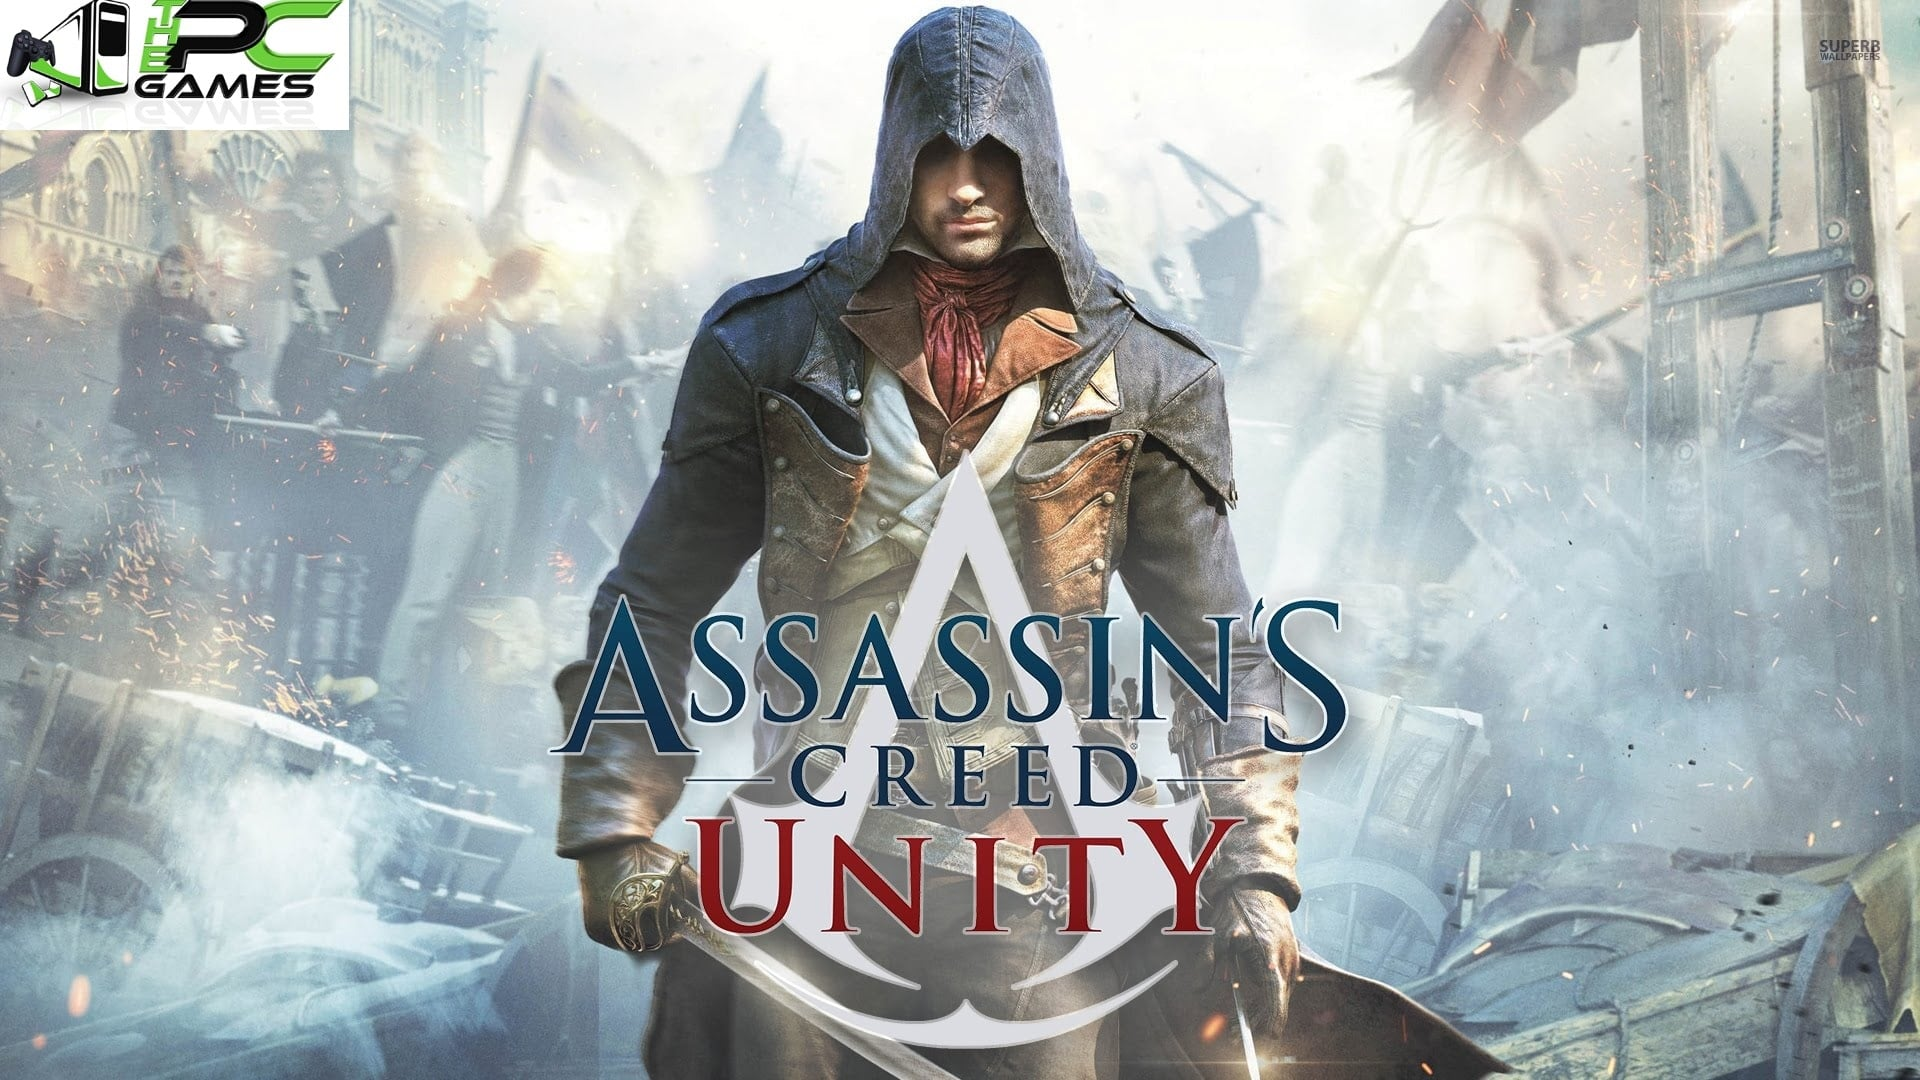 Assassin's Creed Unity Pc Game Full Version Free Download